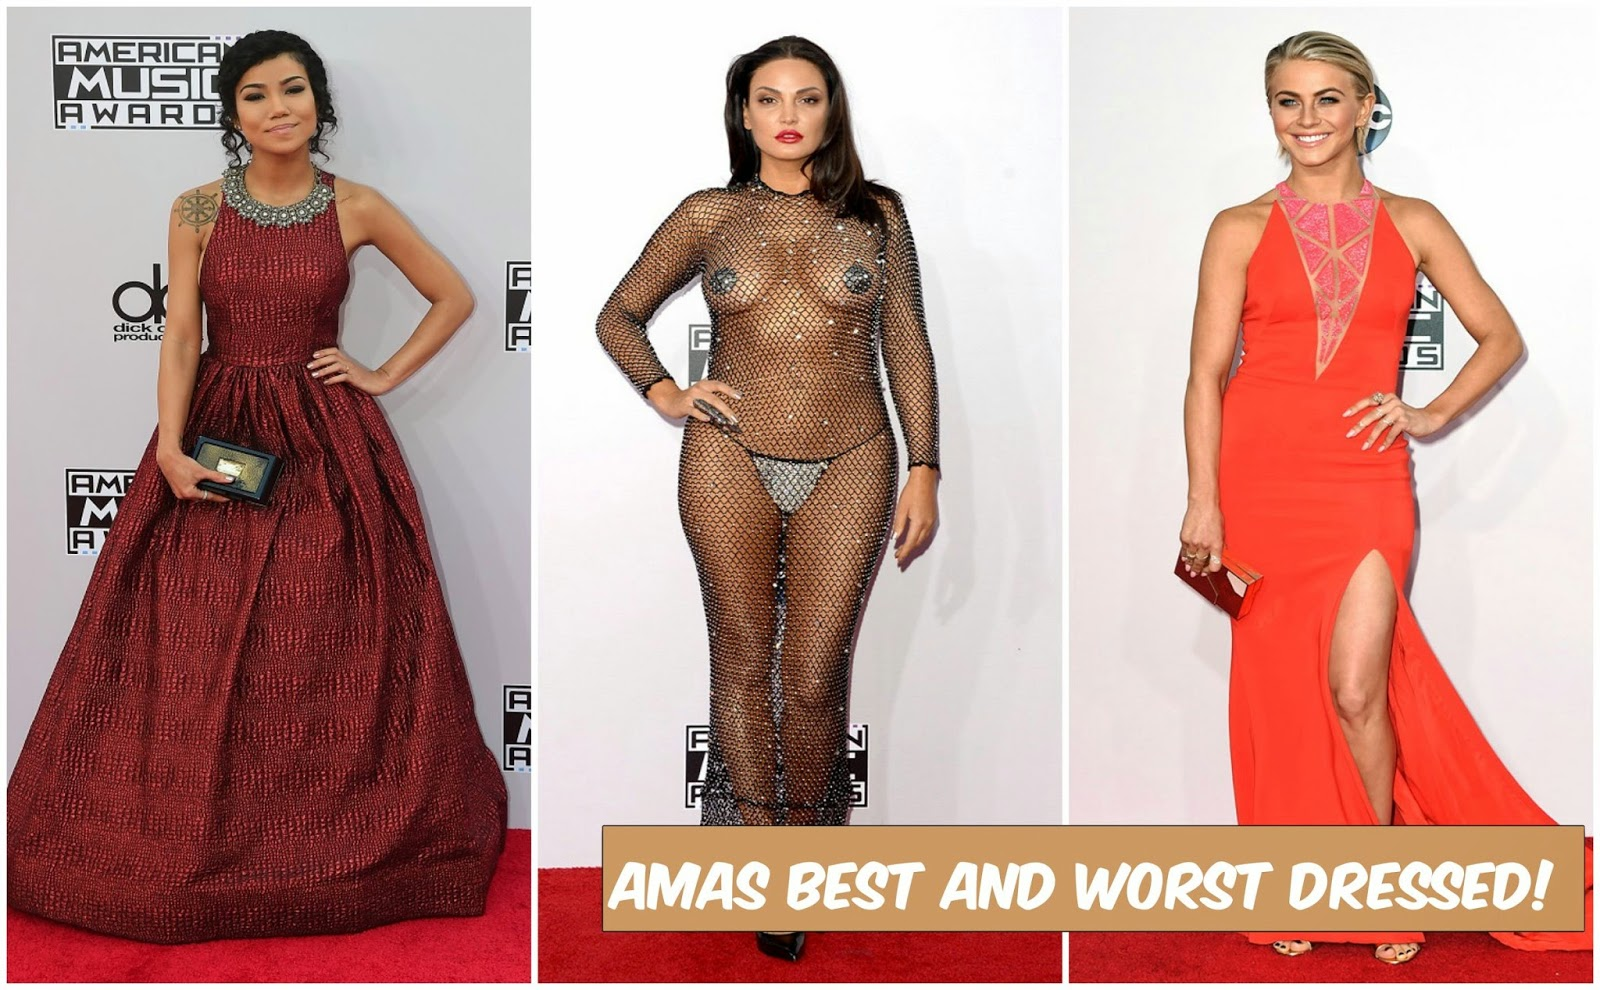 amas best and worst dressed